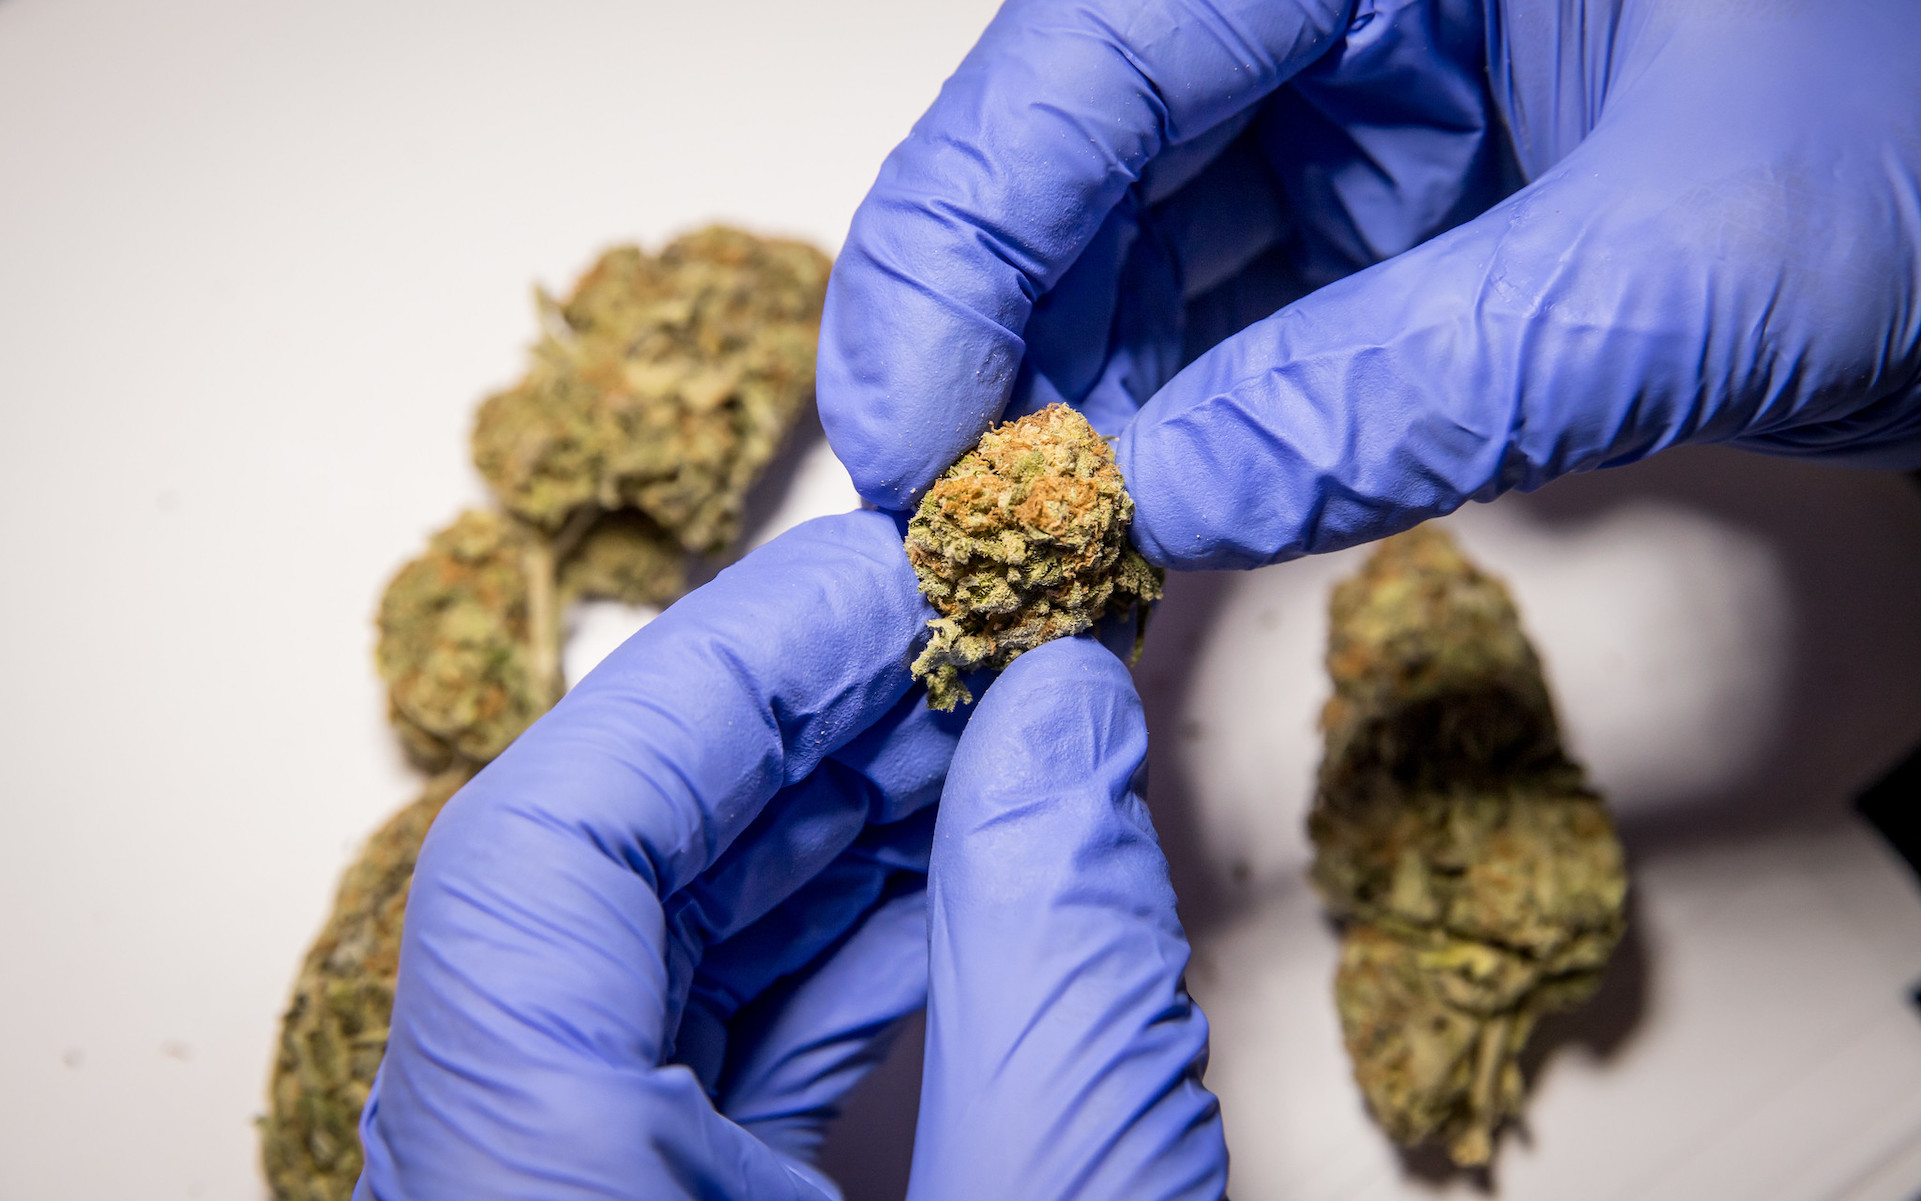 gloves hands inspecting cannabis flower in lab